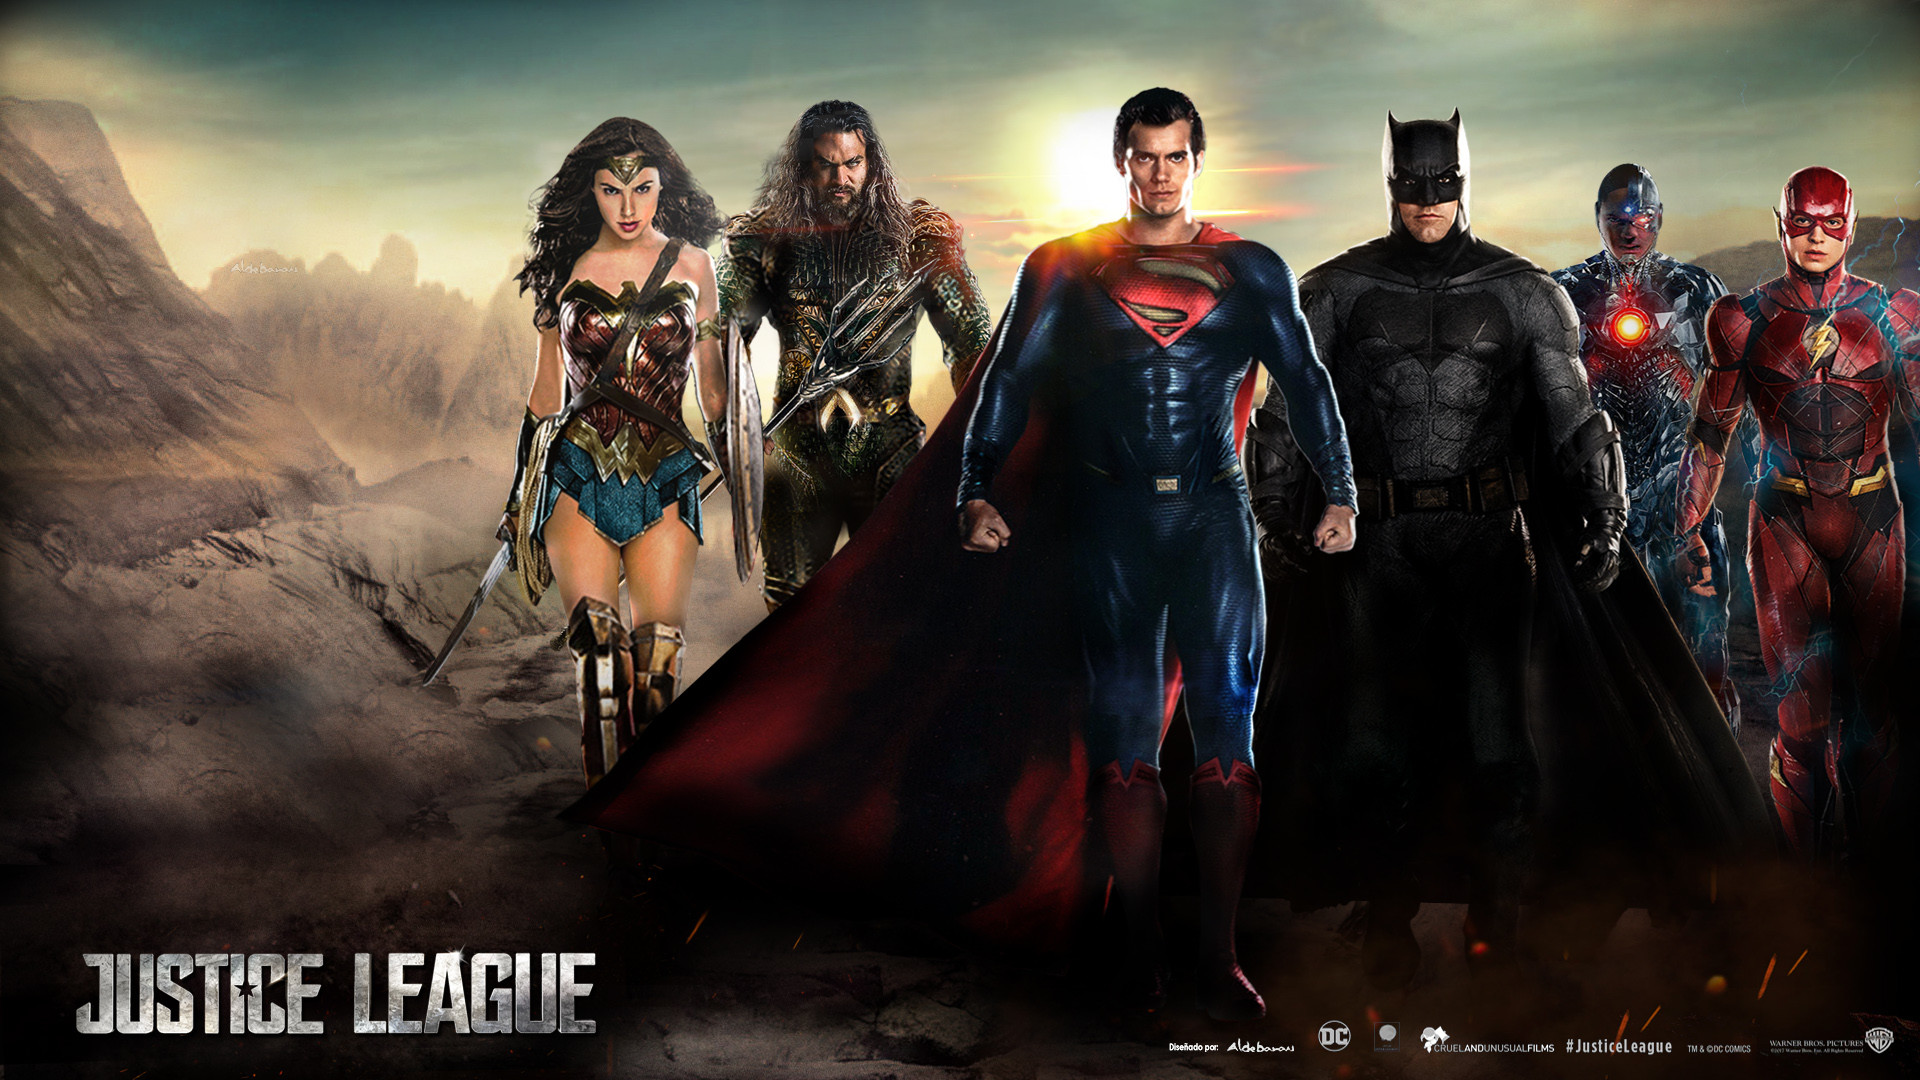 1920x1080 Justice League Movie Wallpaper 3 by SaintAldebaran Justice League Movie  Wallpaper 3 by SaintAldebaran